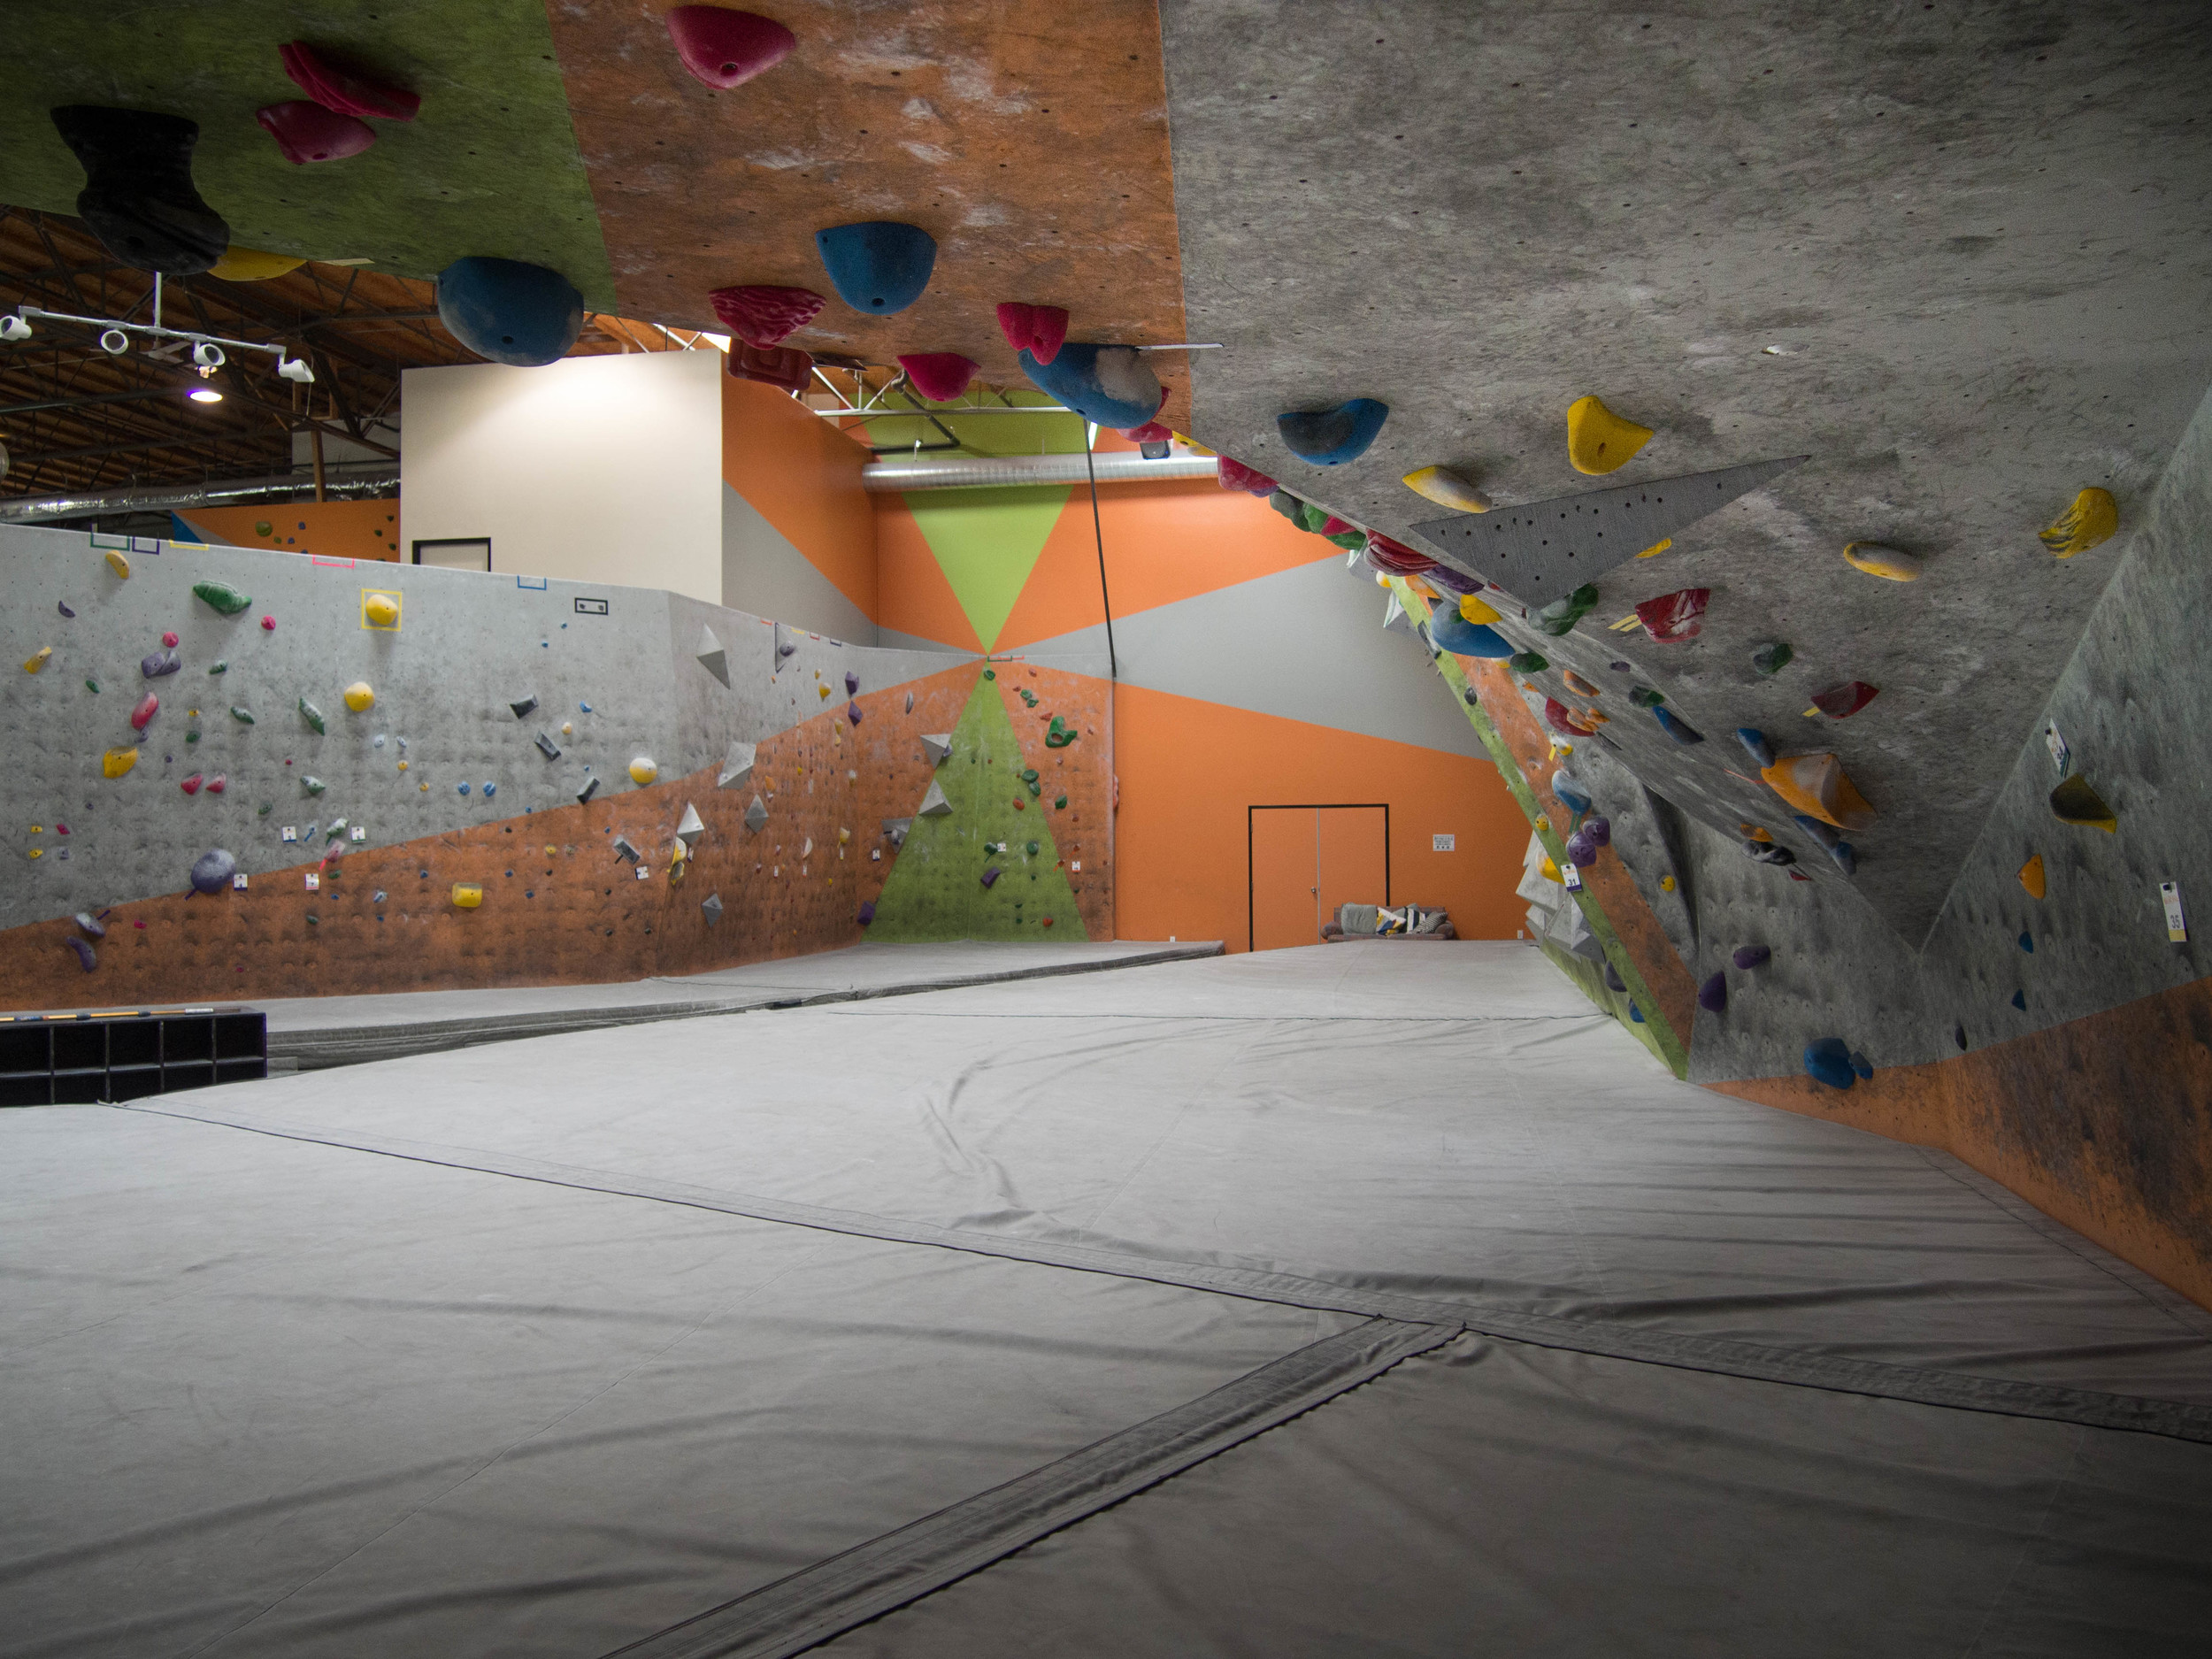 Bouldering in The Wall Climbing Gym